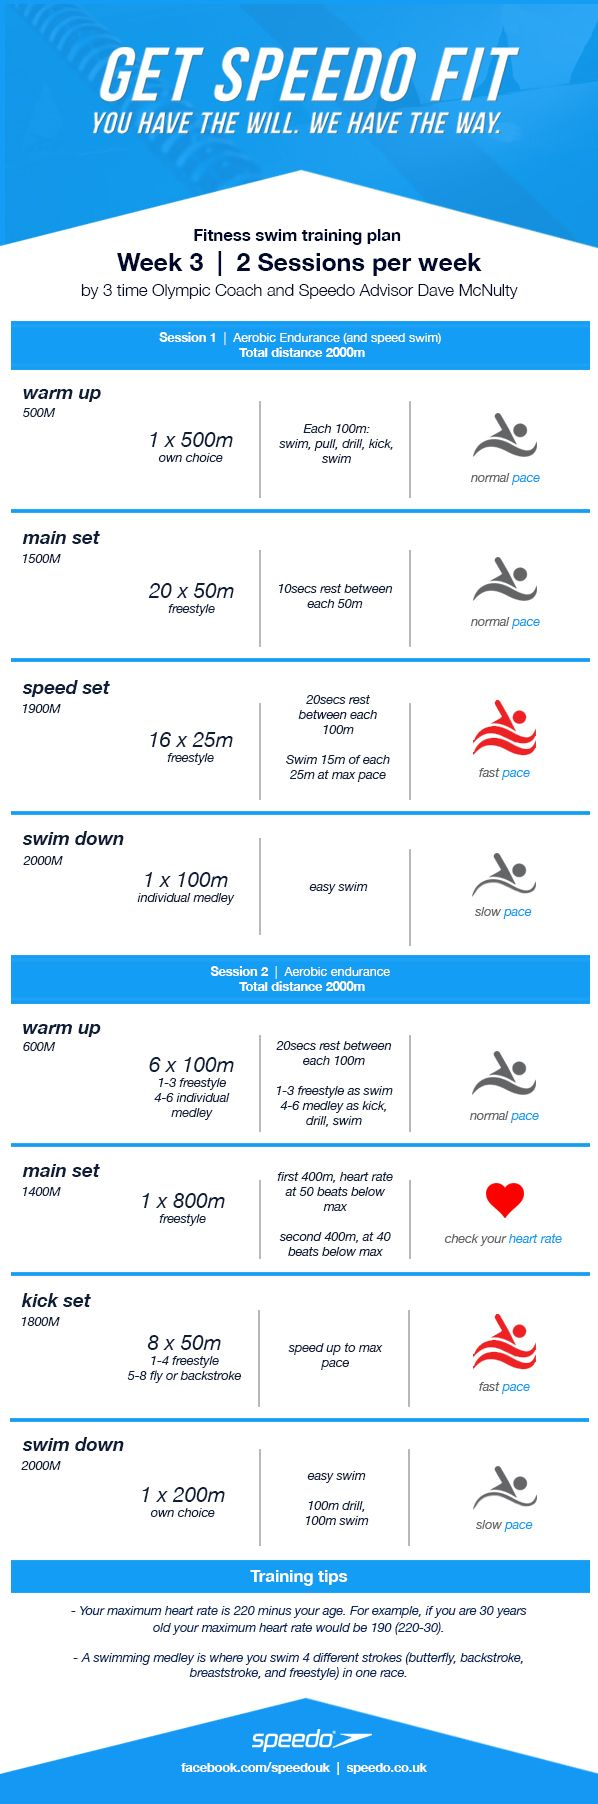 Dave McNulty Swim Fitness Training Plan - Week 3 | Speedo